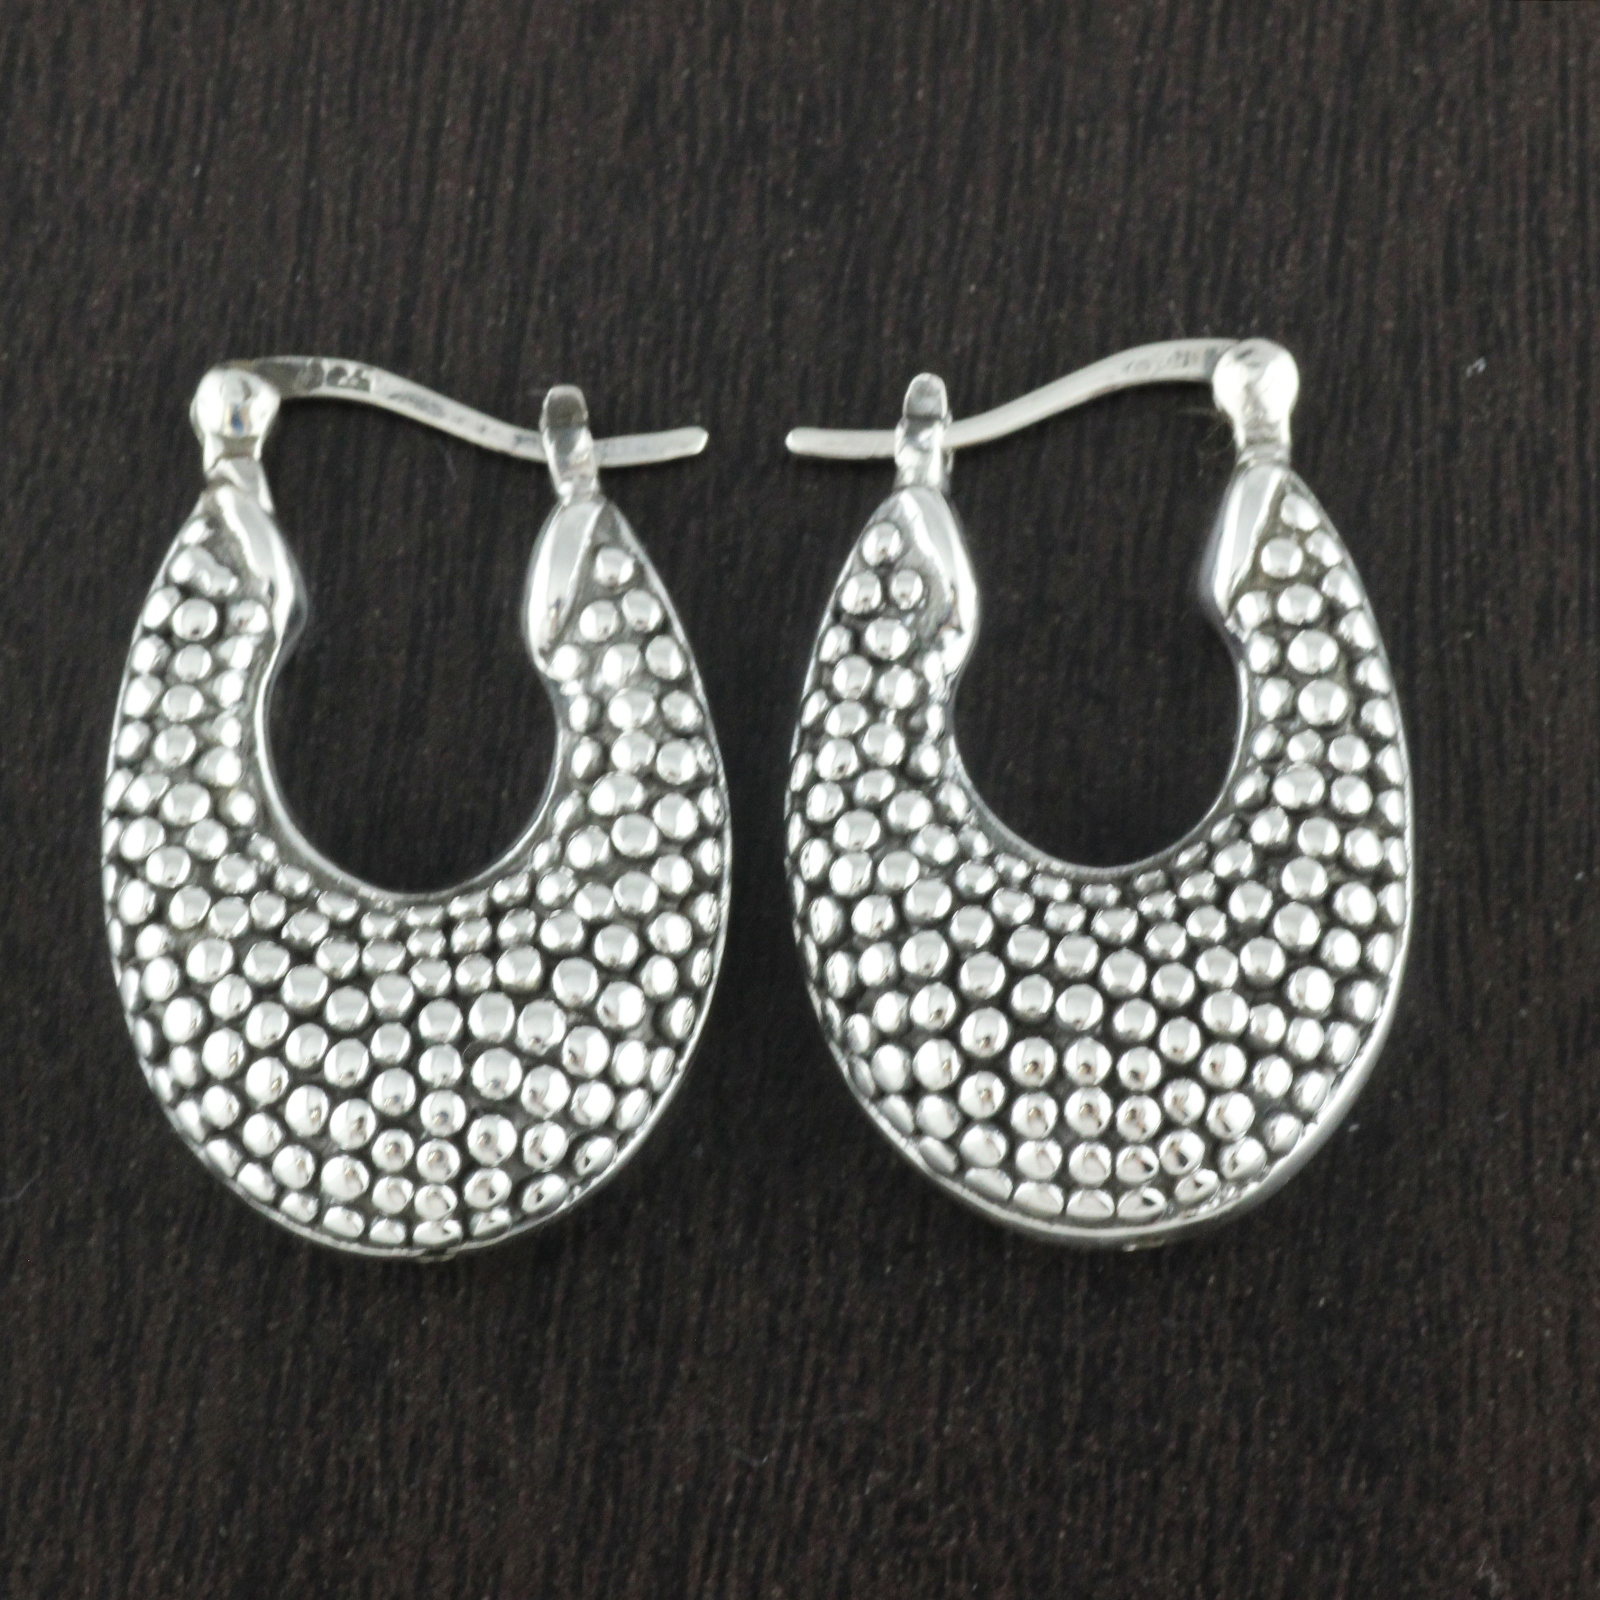 Amazing Womens Huggie Hoop Earrings White Gold Filled Silver Leverback